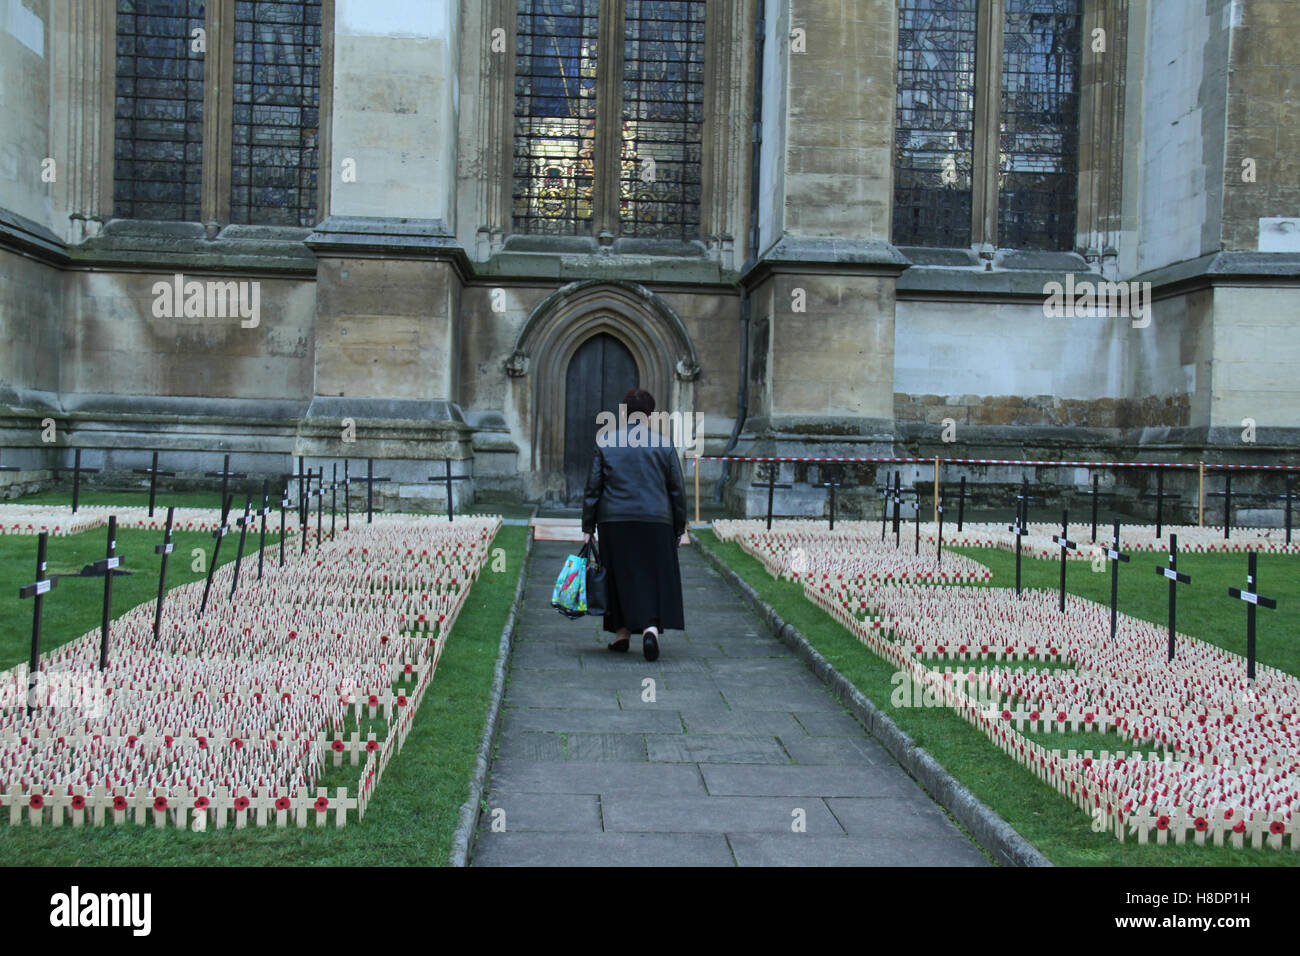 London, UK. 11th November, 2016. A woman walks past  crosses planted at the Fields of Remembrance at Westminster - Stock Image